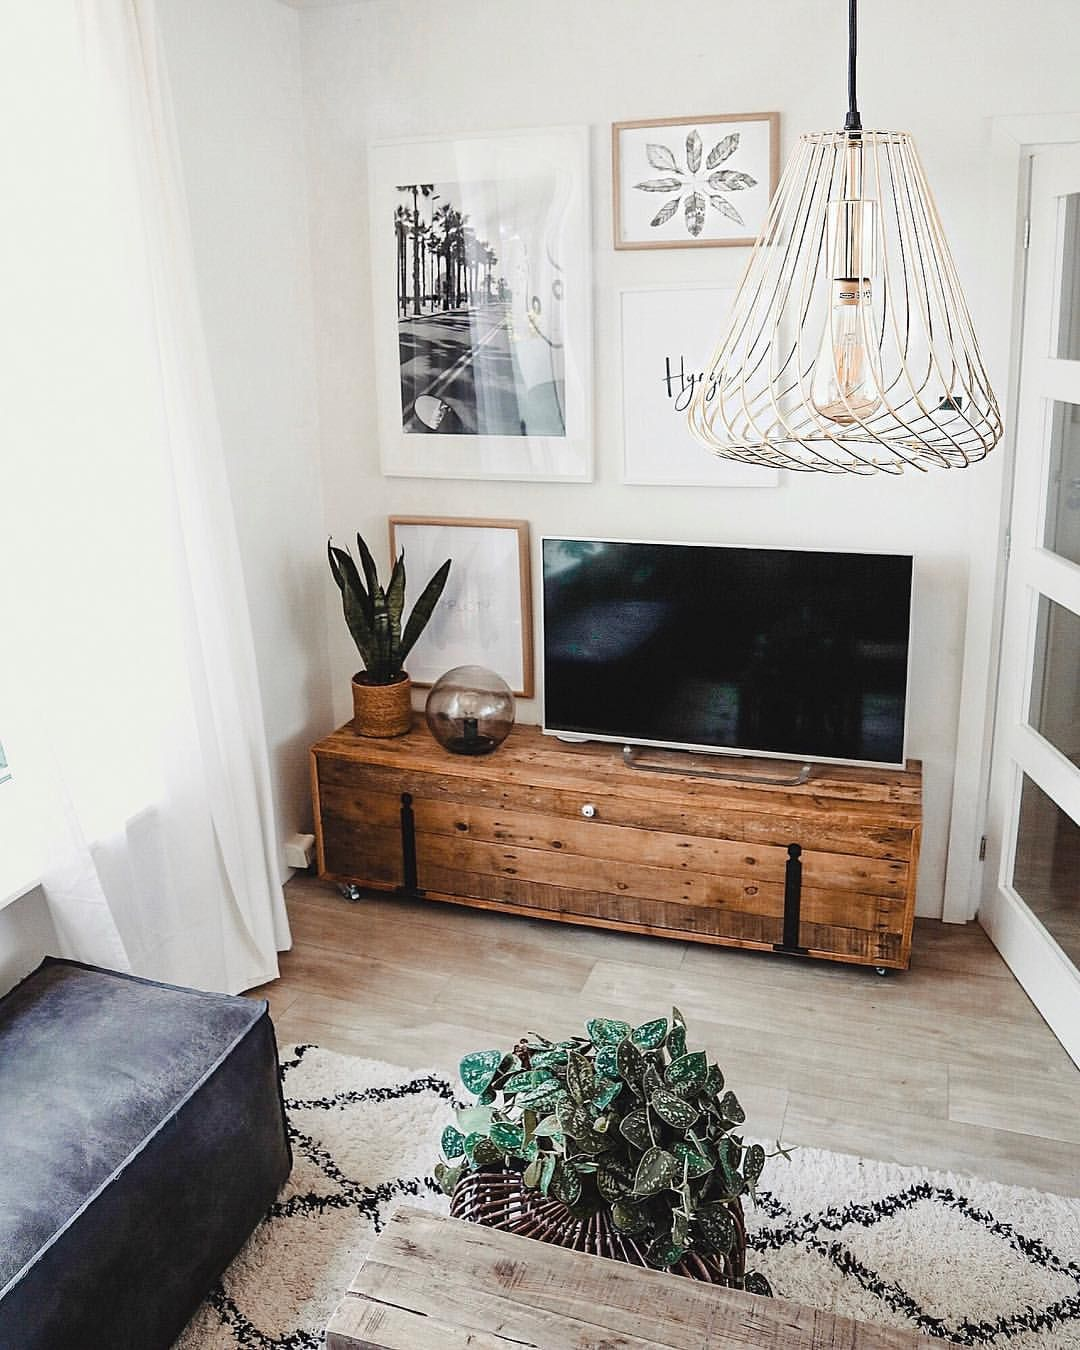 Marit  my styling diary on instagram  cr     na uur staan nu echt even de voetjes omhoog en relaxmodus aan beetje gesloopt maar gewoon lekker also best living room space images in bedrooms diy ideas for rh pinterest